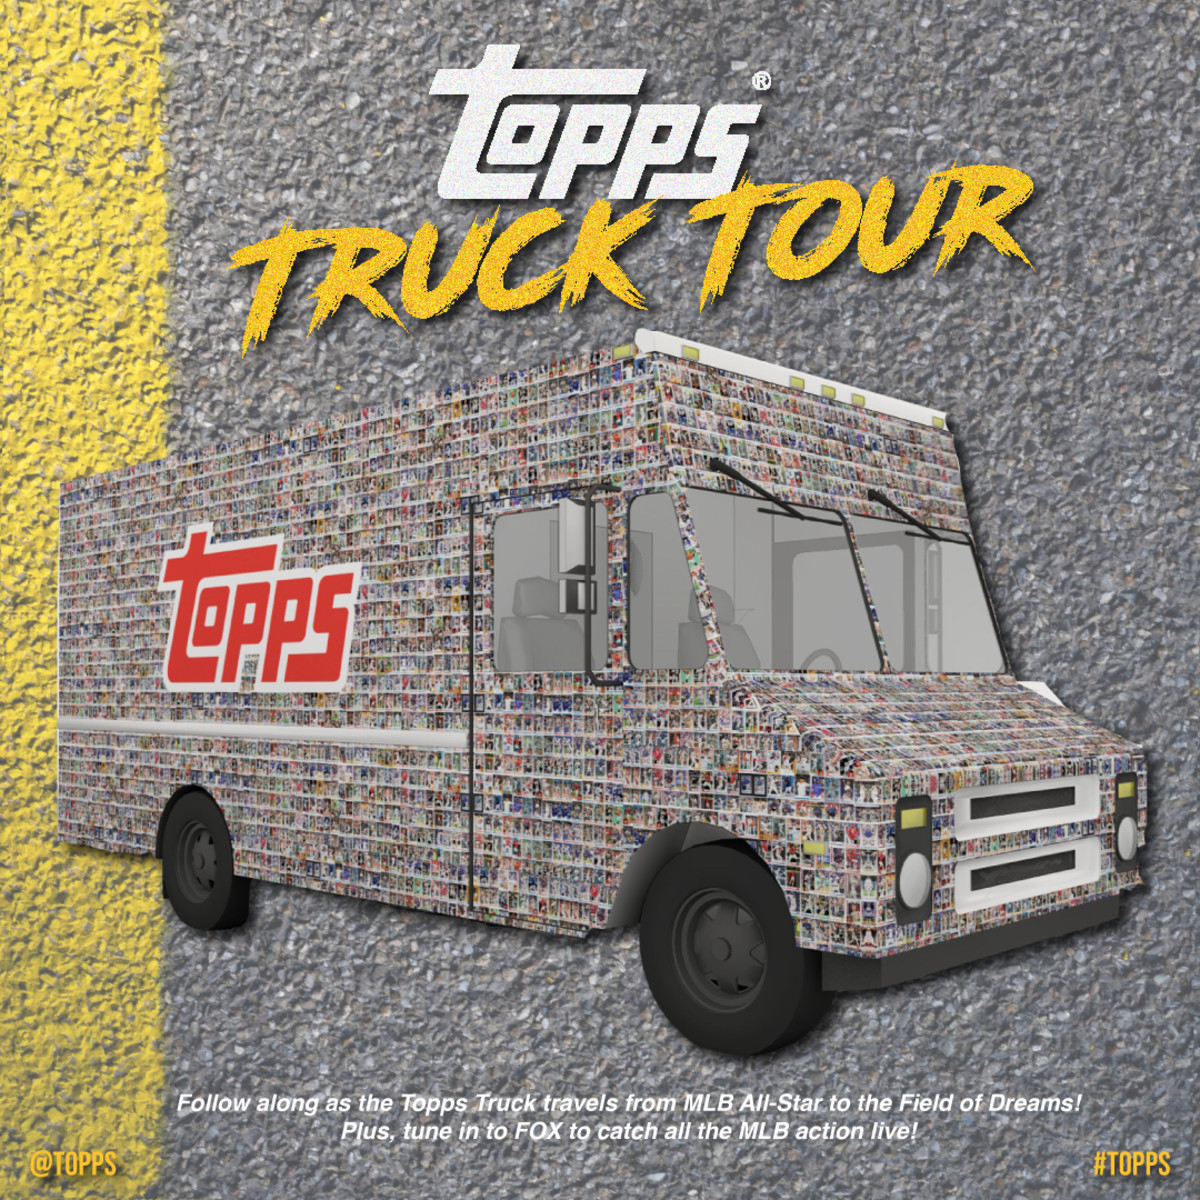 The Topps Truck Tour will travel 7,000 miles to honor National Baseball Card Day.